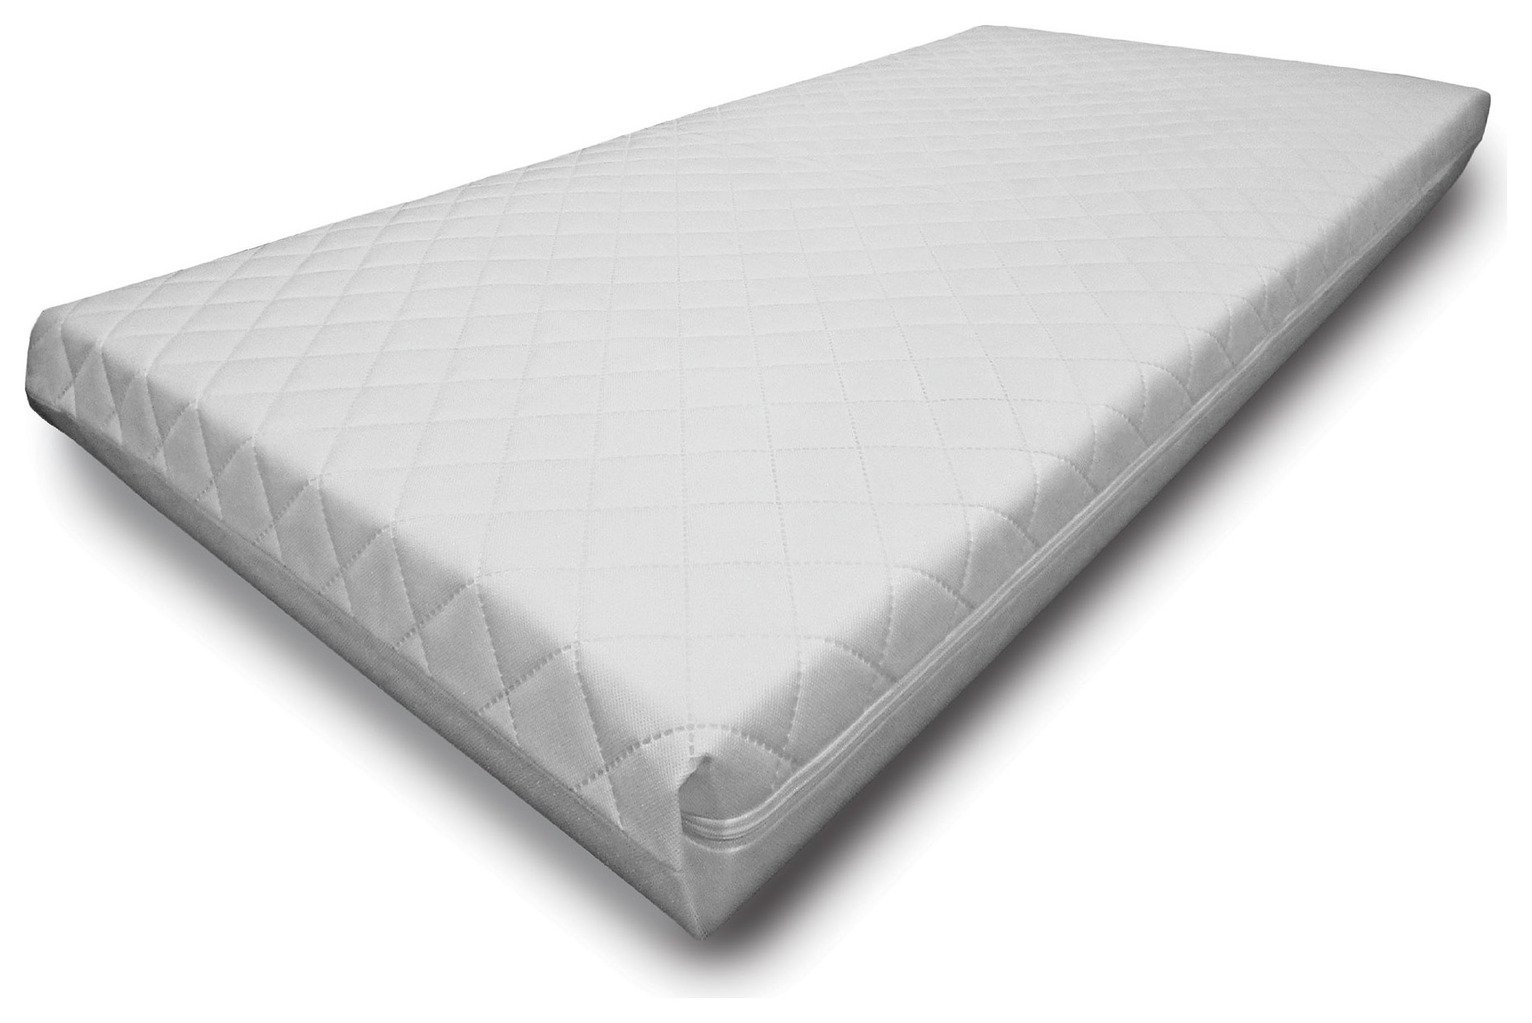 Mattress Cot Cuggl Luxury Sprung Cot Bed Mattress 140 X 69cm